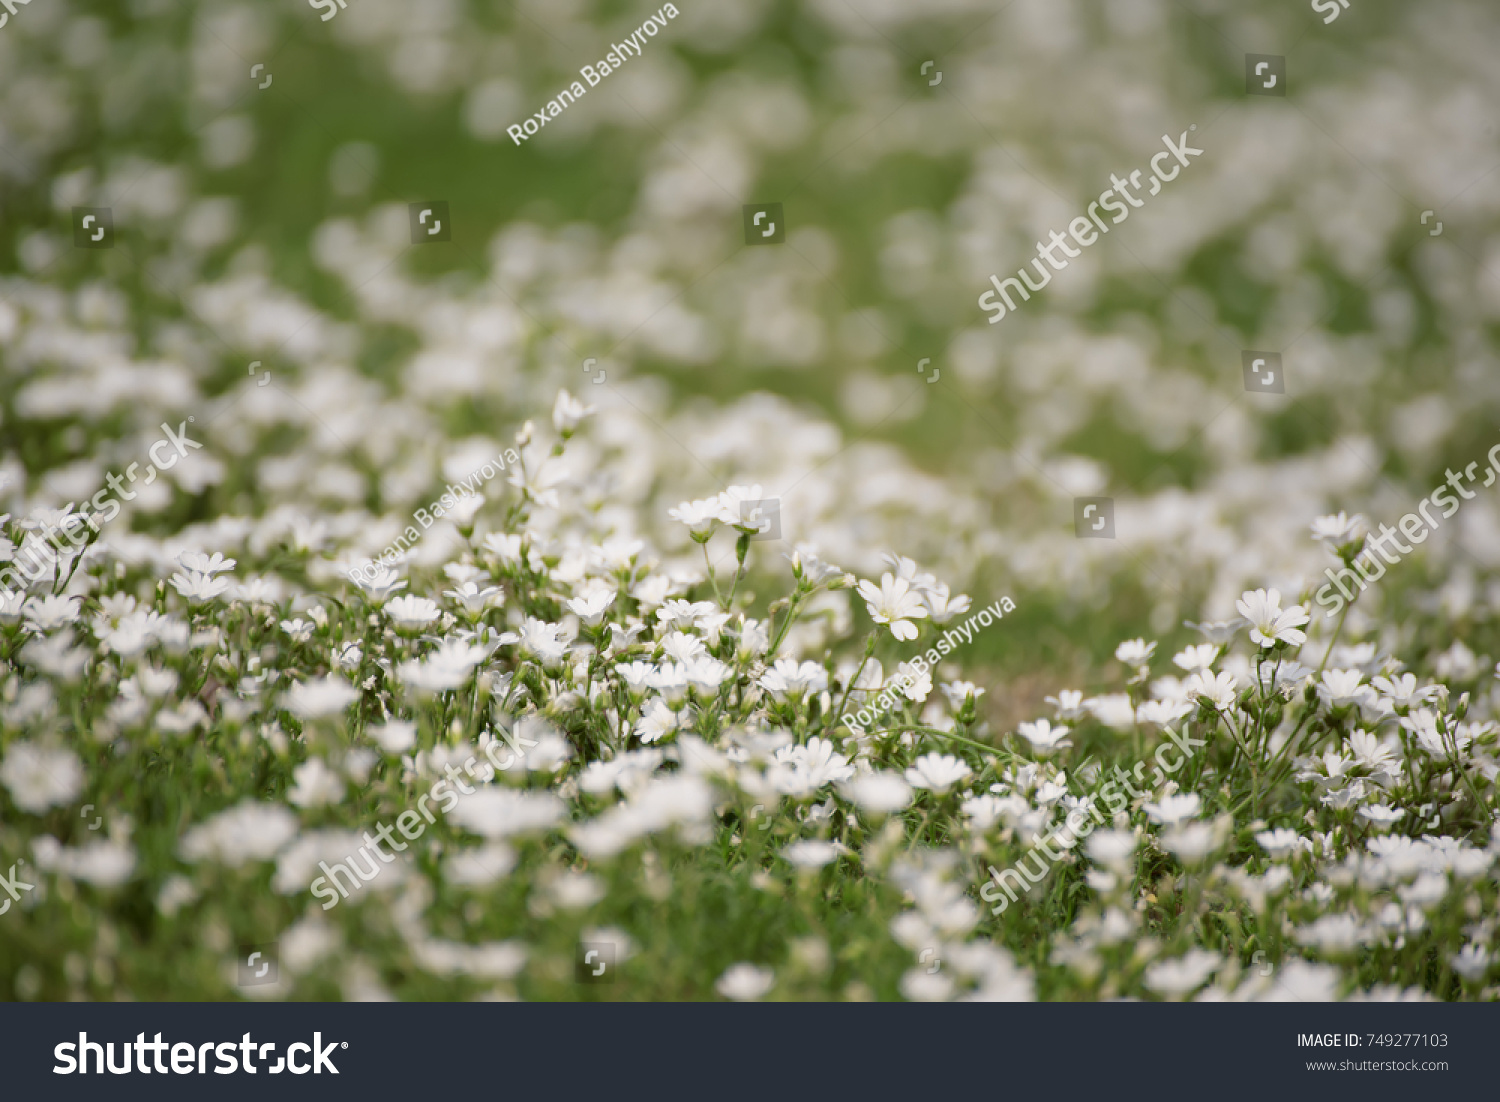 White Tender Spring Flowers Growing Meadow Royalty Free Stock Image